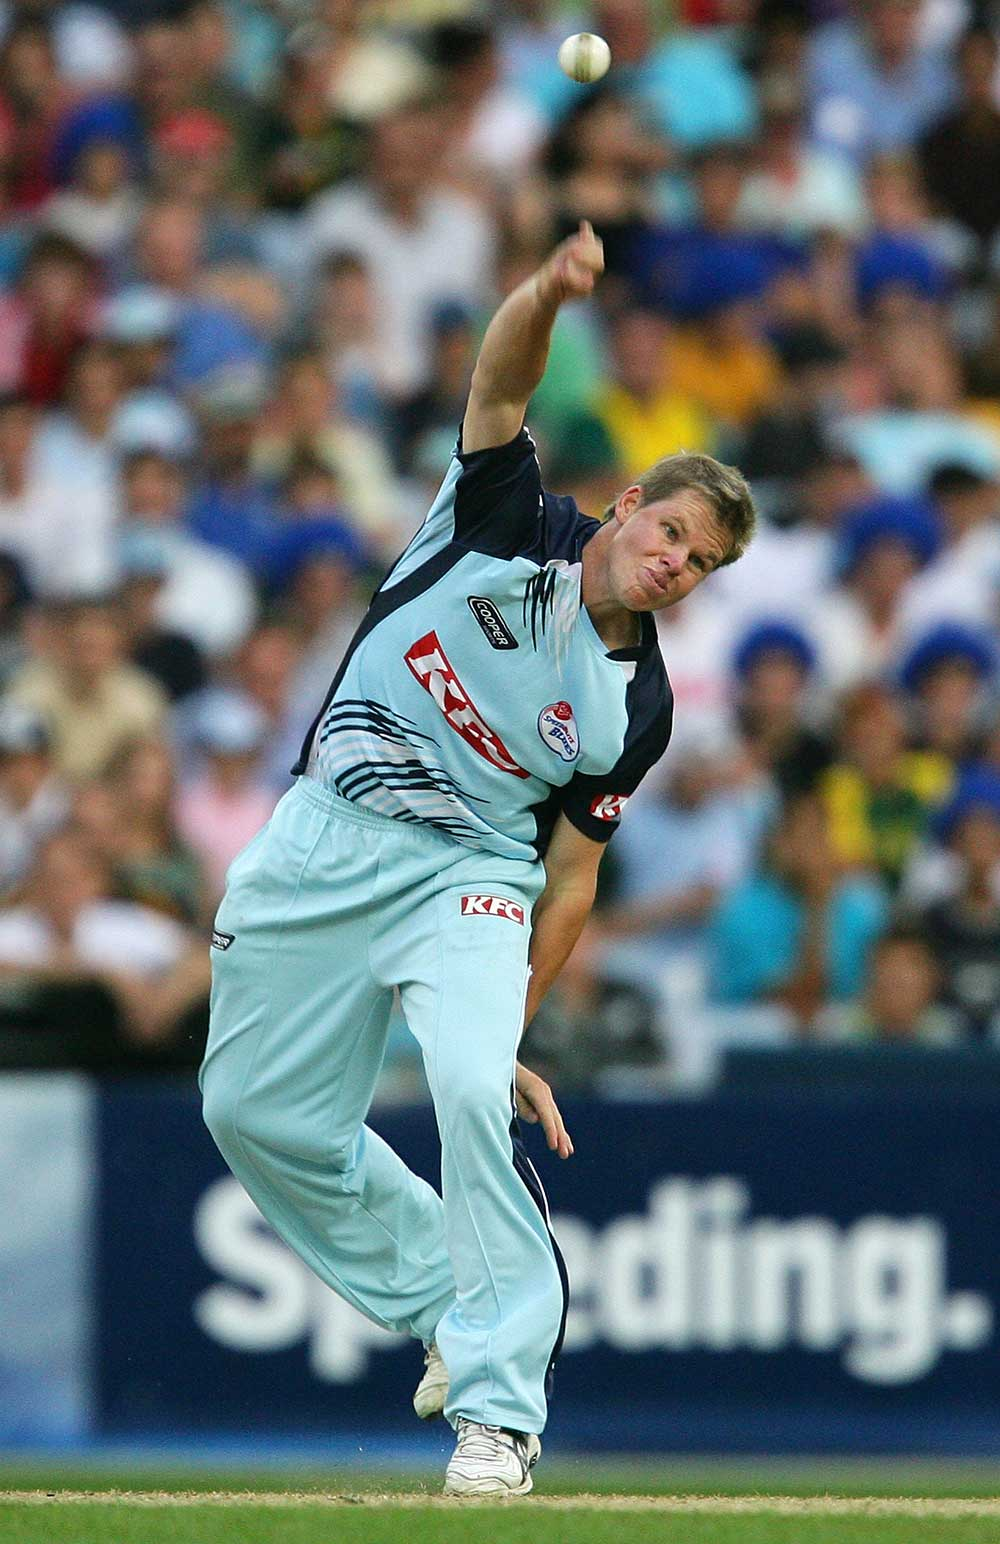 Steve Smith spins one during a Big Bash game with NSW in early 2010 // Getty